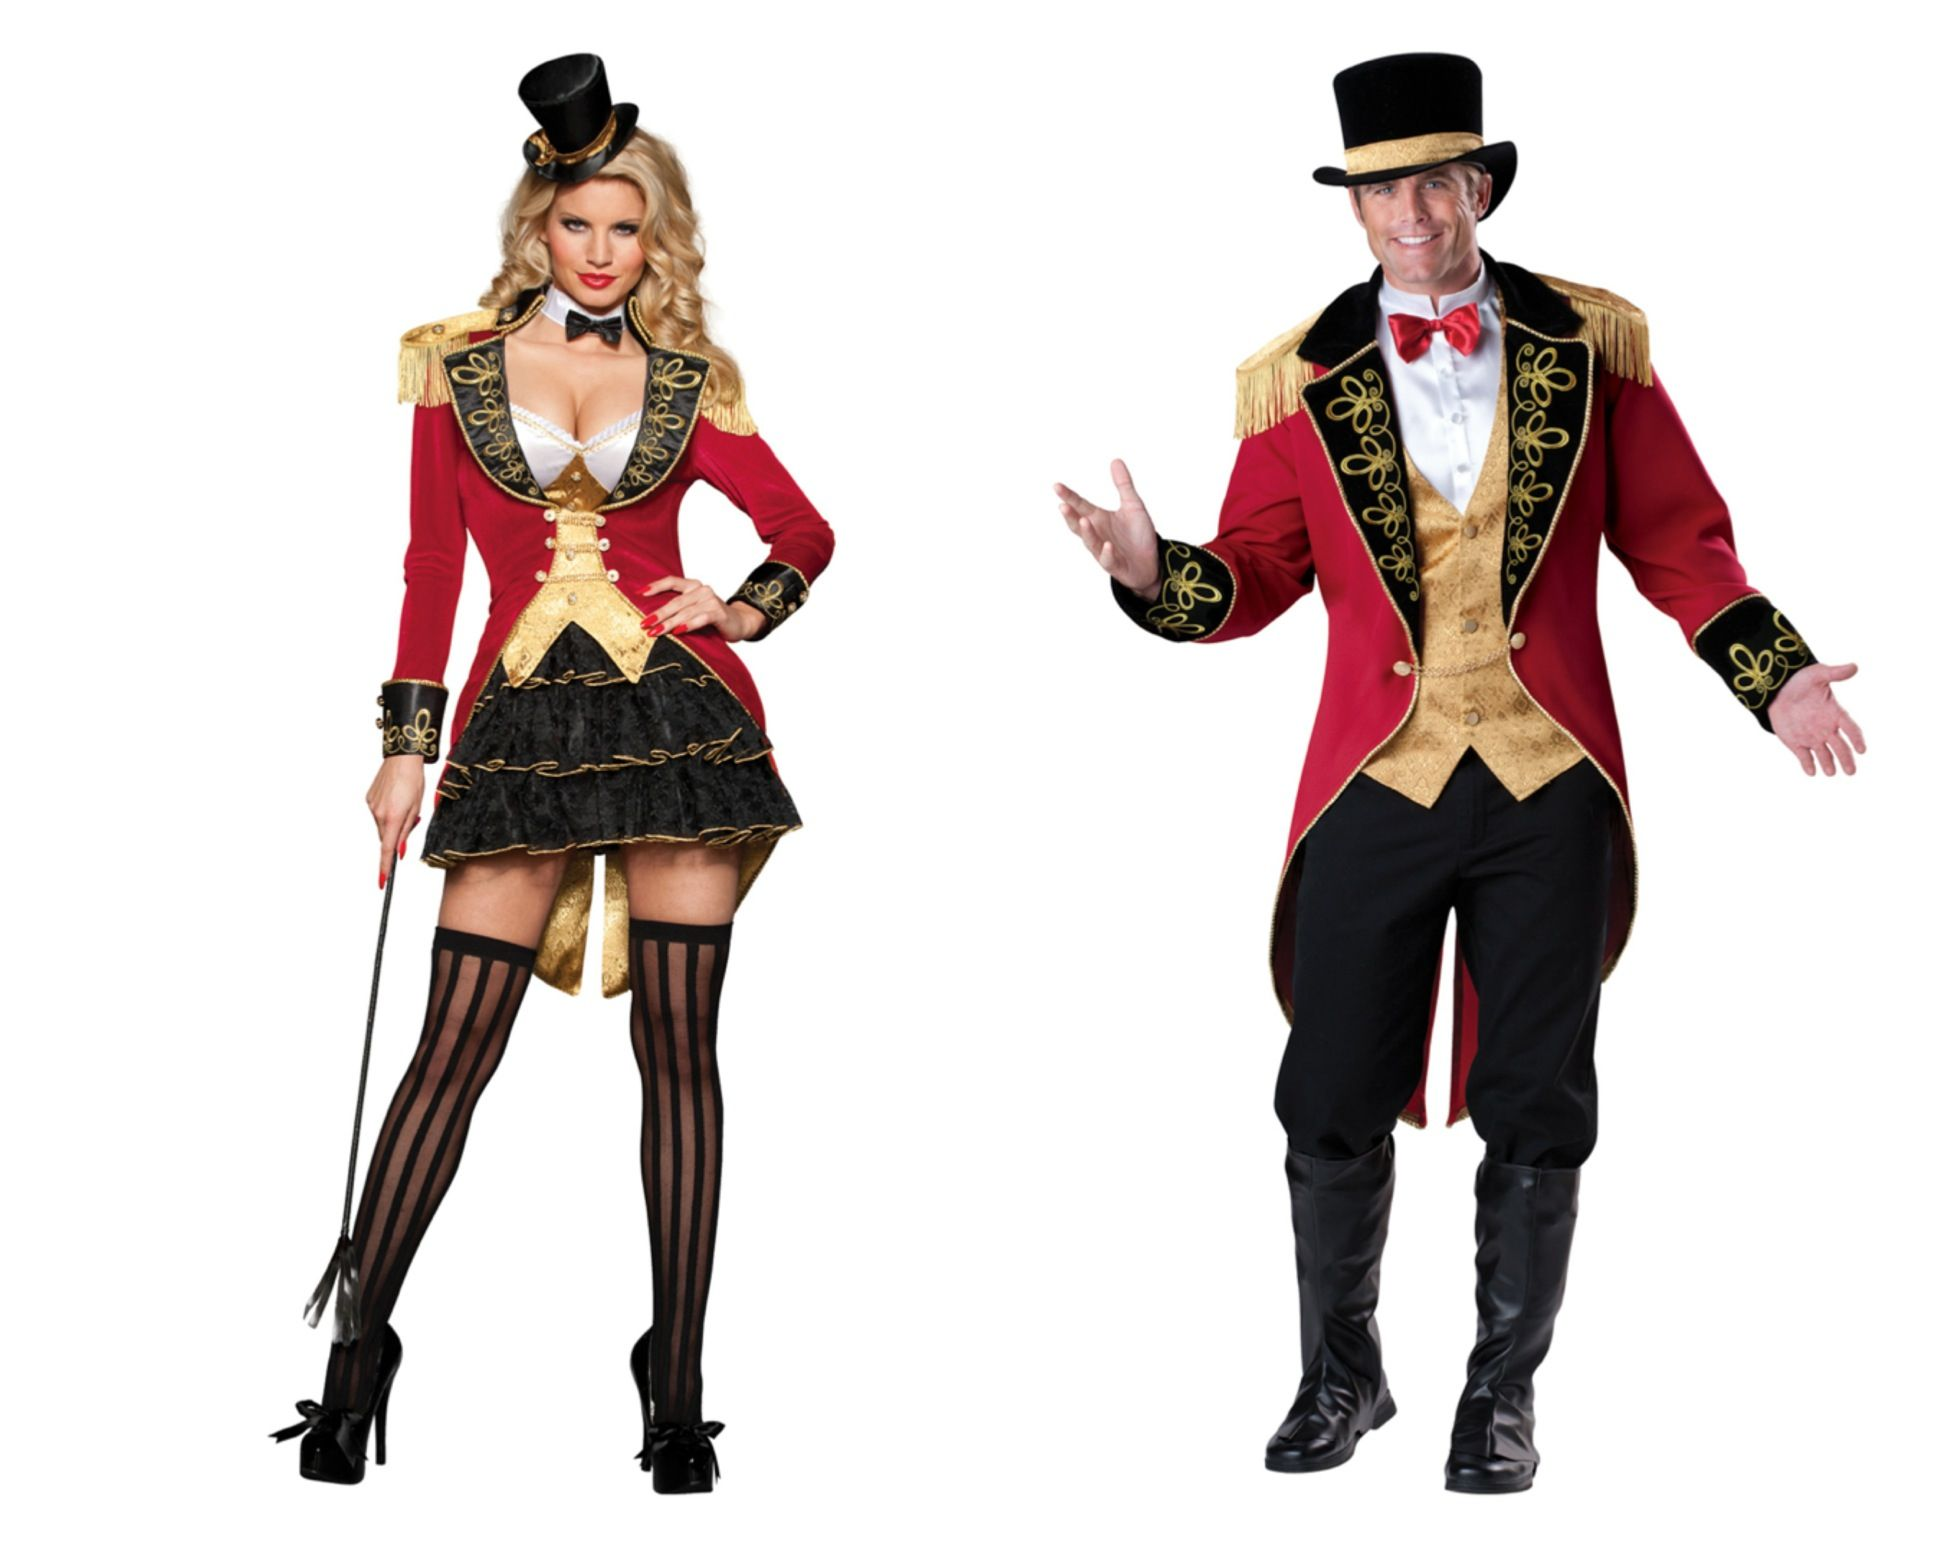 His And Hers Ringleader Costumes For Couples Other Ideas Lion Tiger Gymnast Elephant Clown Disfraces Disfracez Modelos